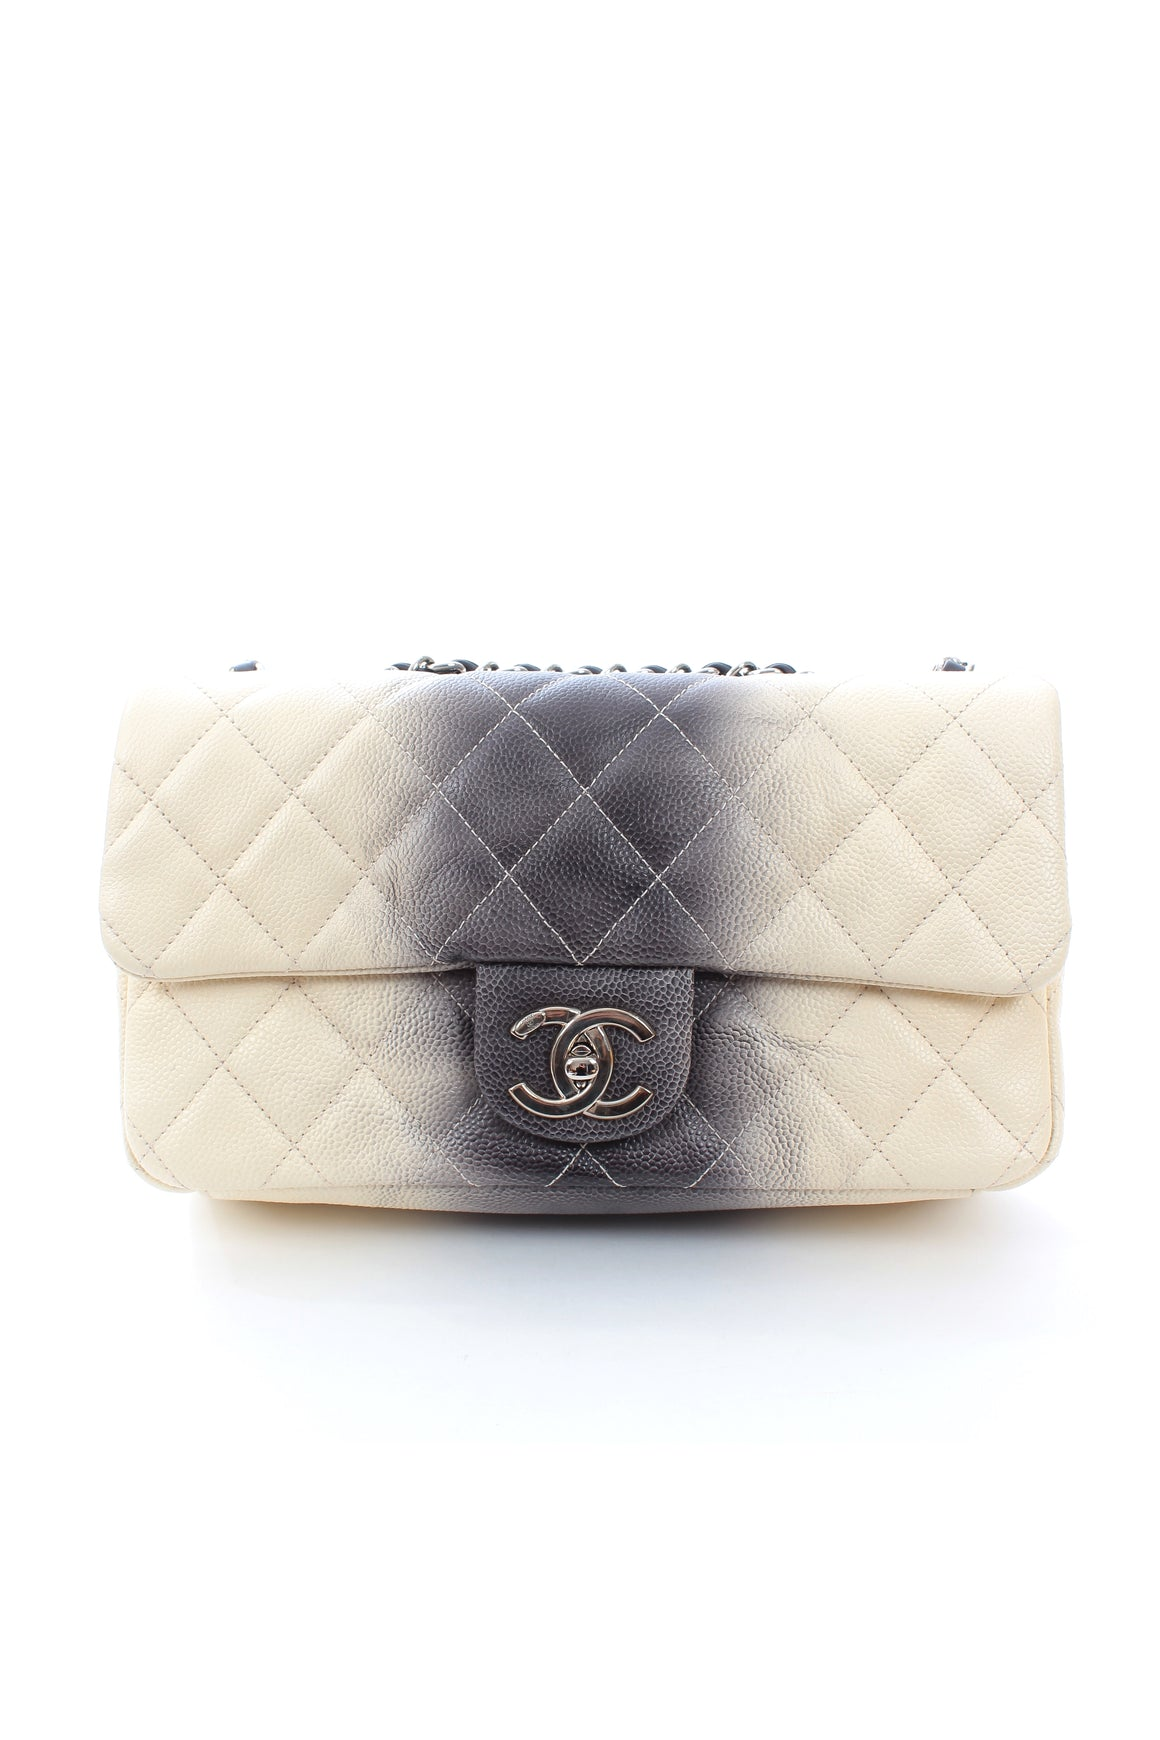 Chanel Ombré Quilted Caviar Leather Flap Bag